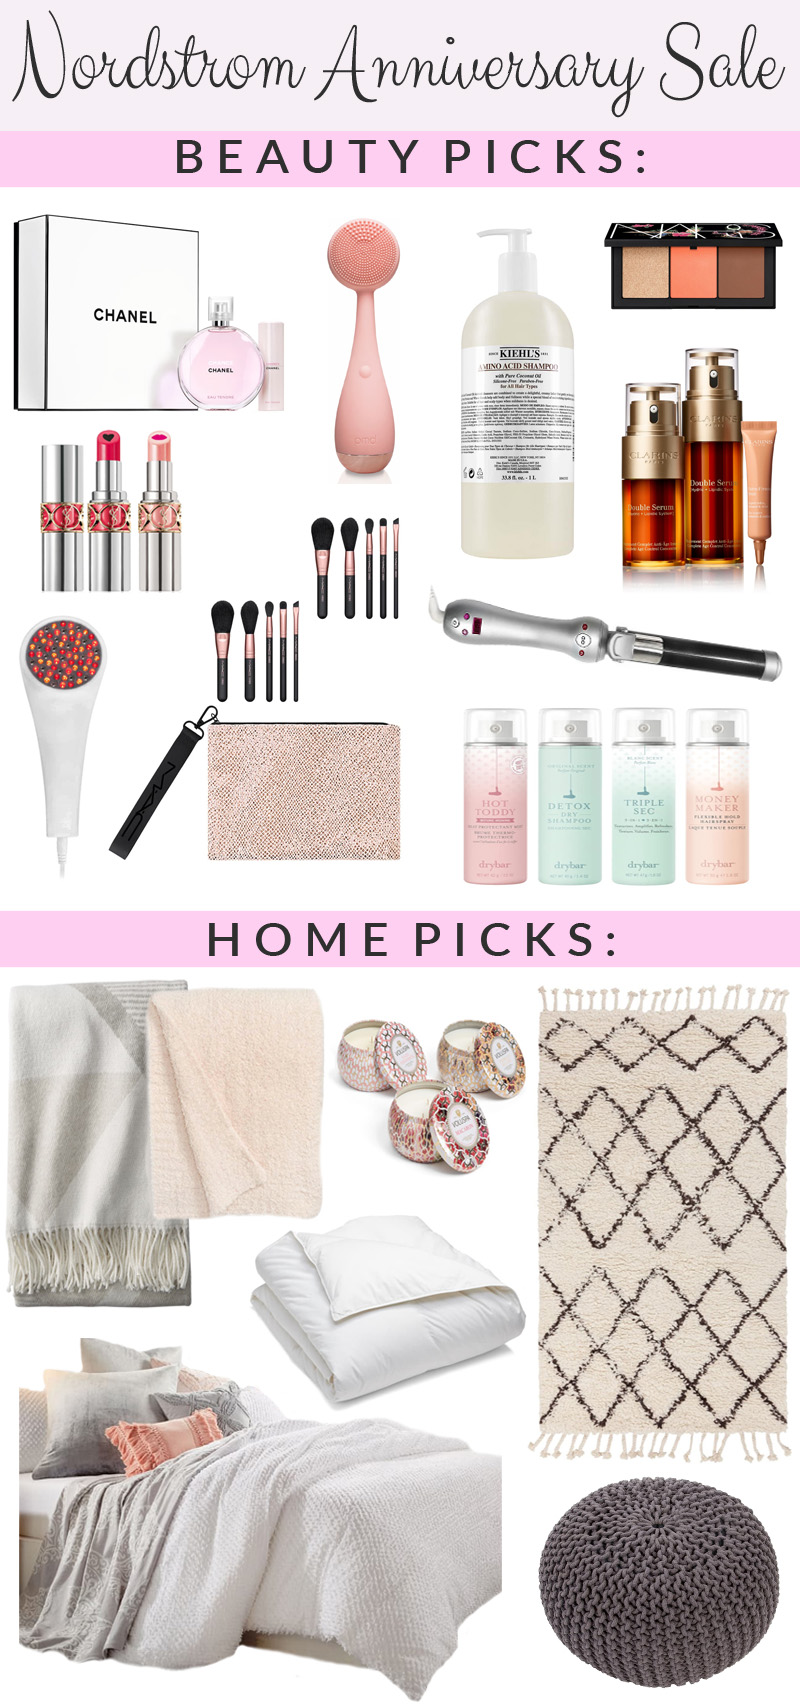 Nordstrom Anniversary Sale Beauty & Home Picks